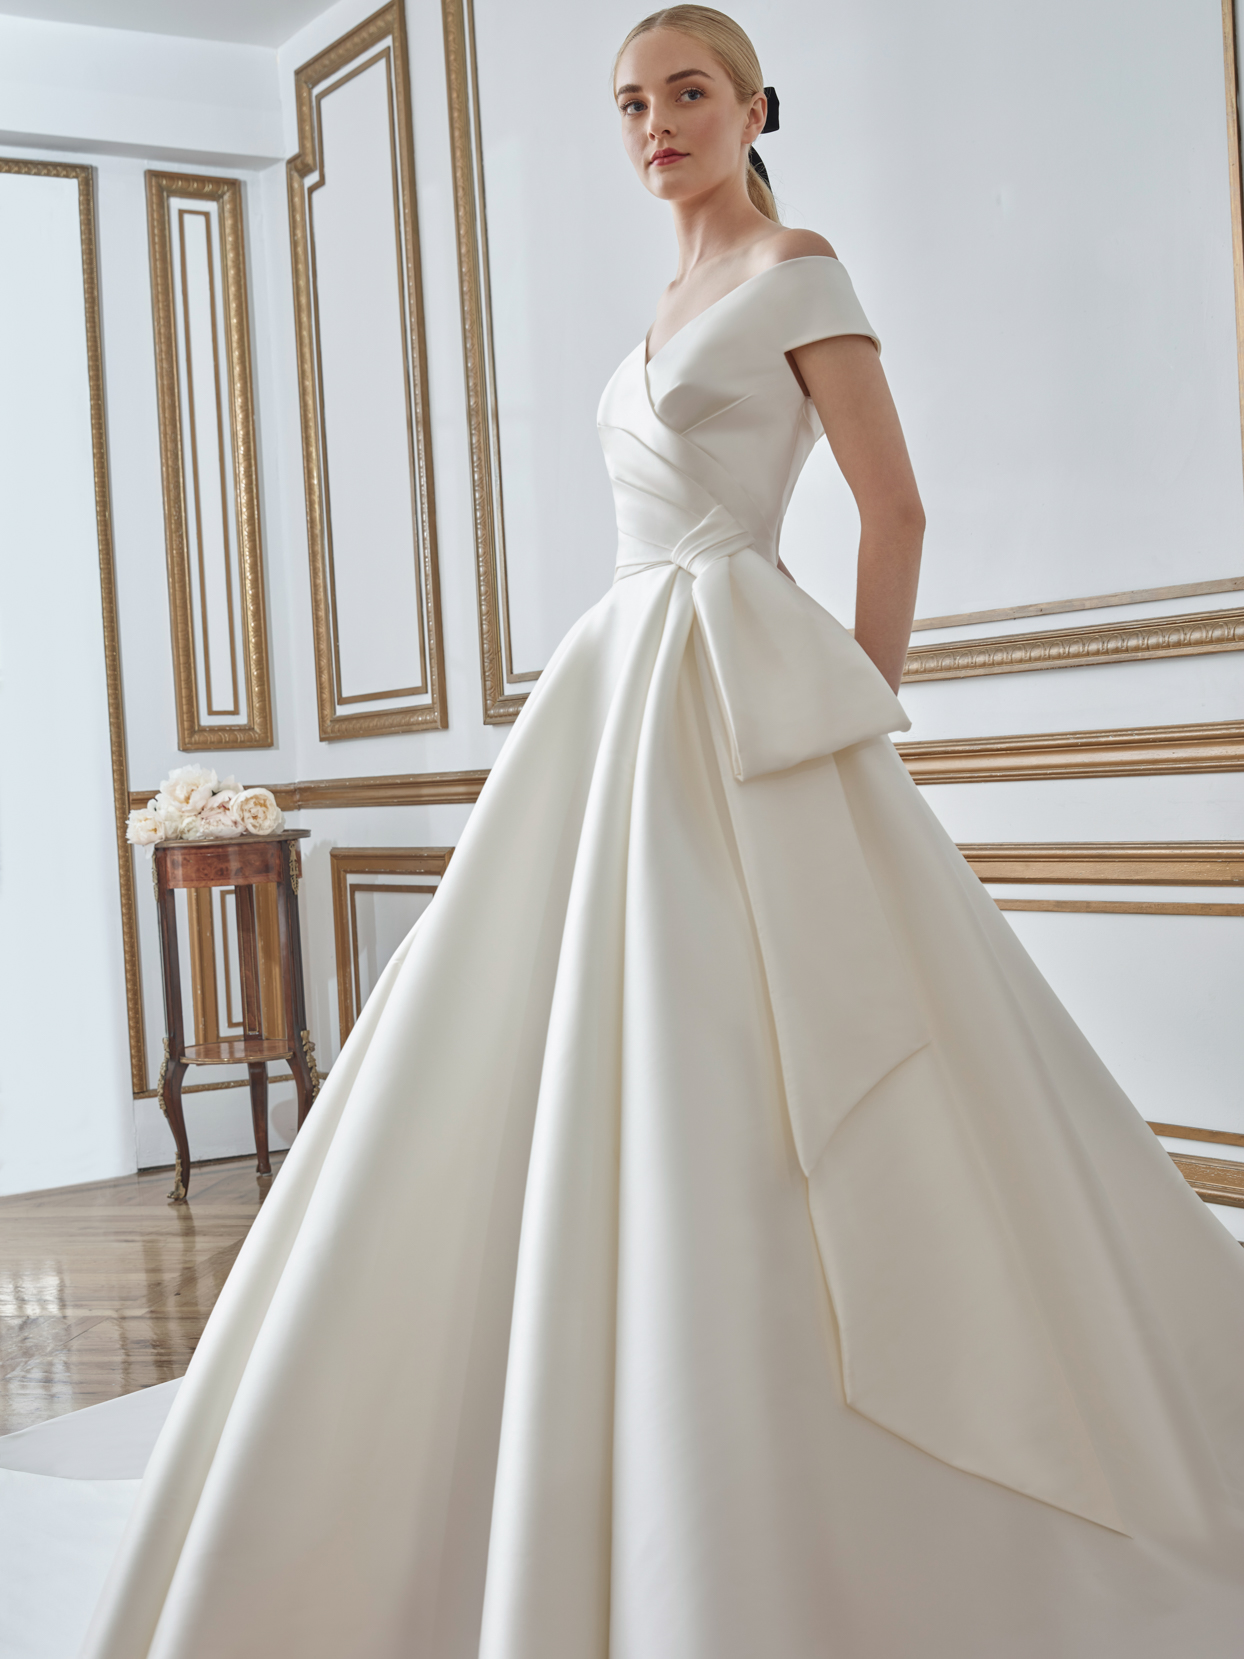 sareh nouri ball gown v-neck wedding dress fall 2021